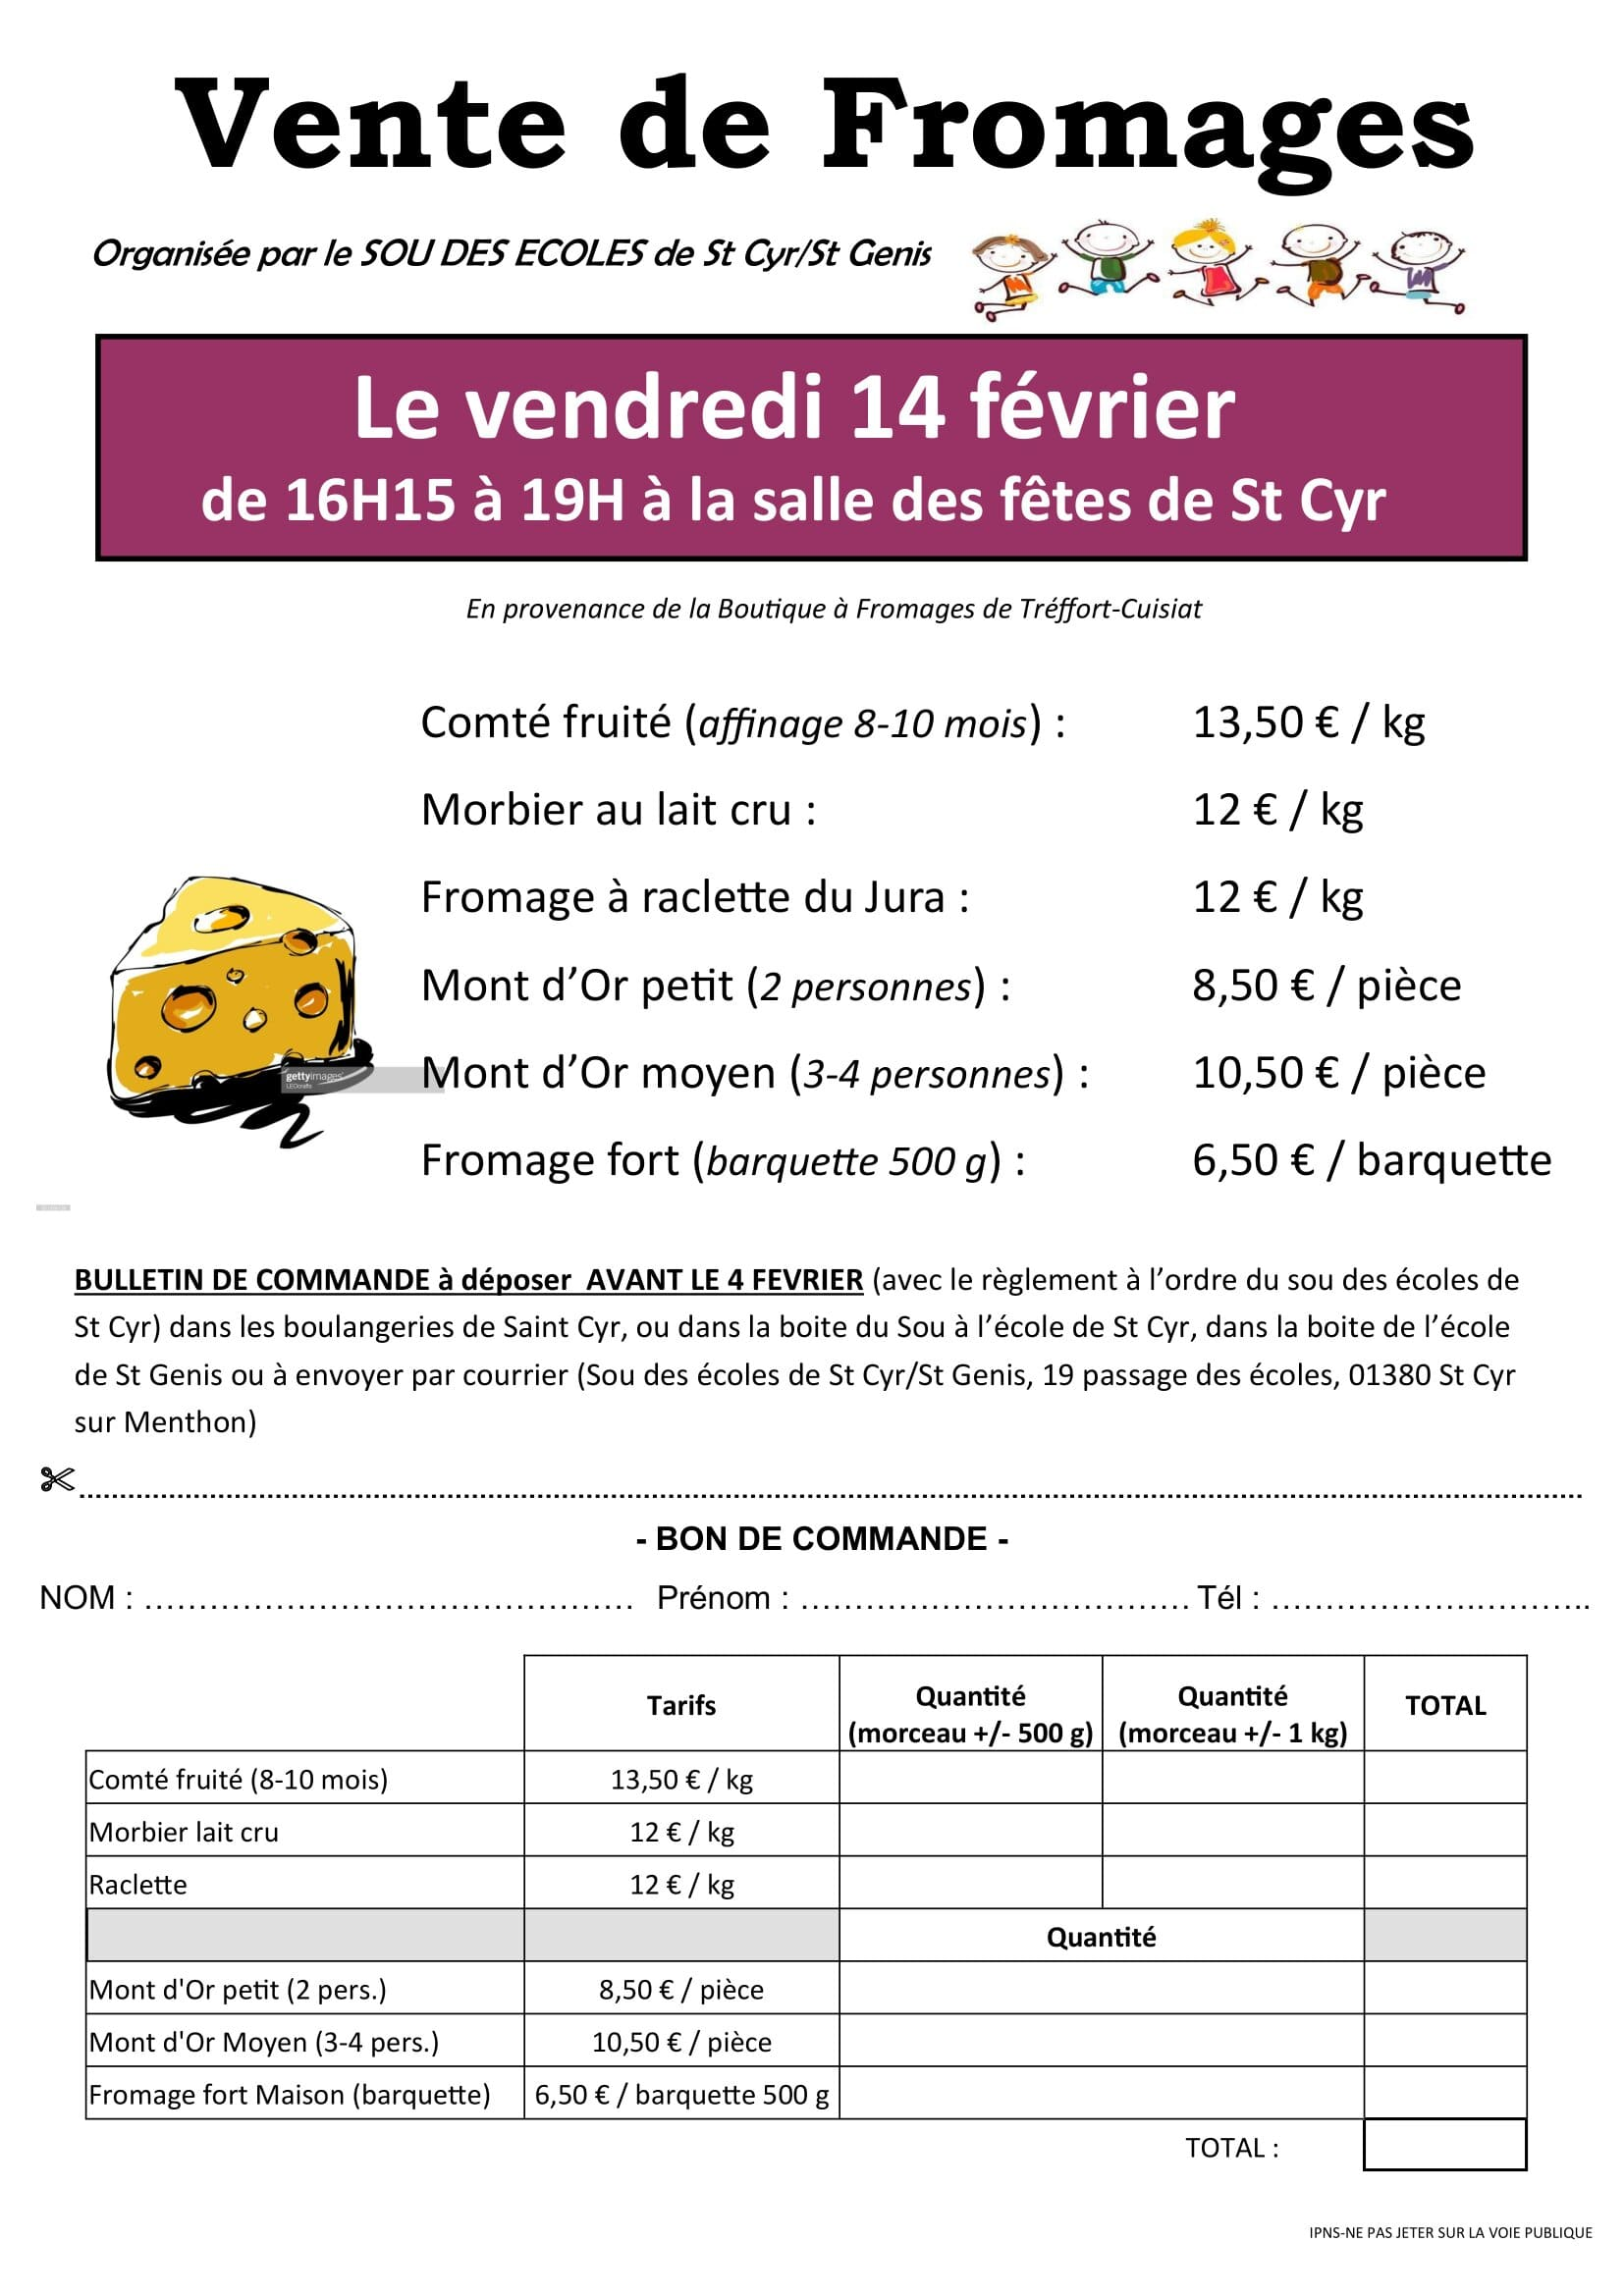 FLYERS VENTE FROMAGE 2020 v2